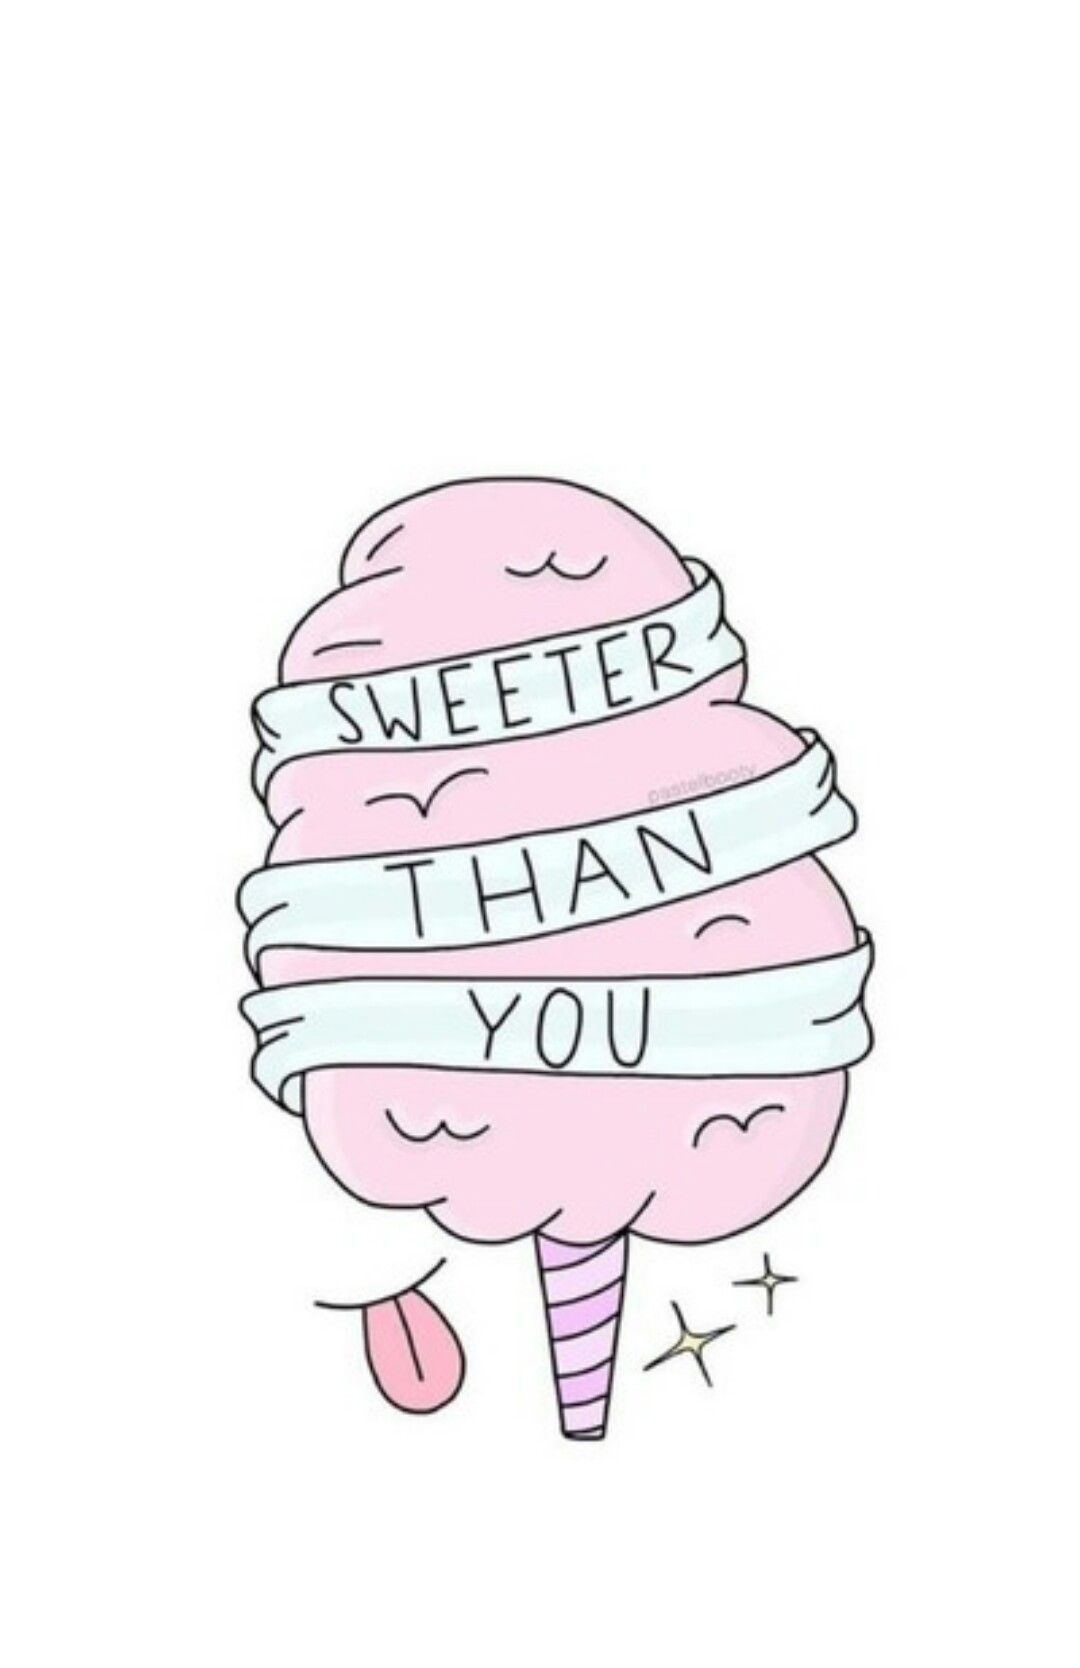 Cute Cotton Candy Wallpaper Art In 2018 Pinterest Tumblr Alise Lucu